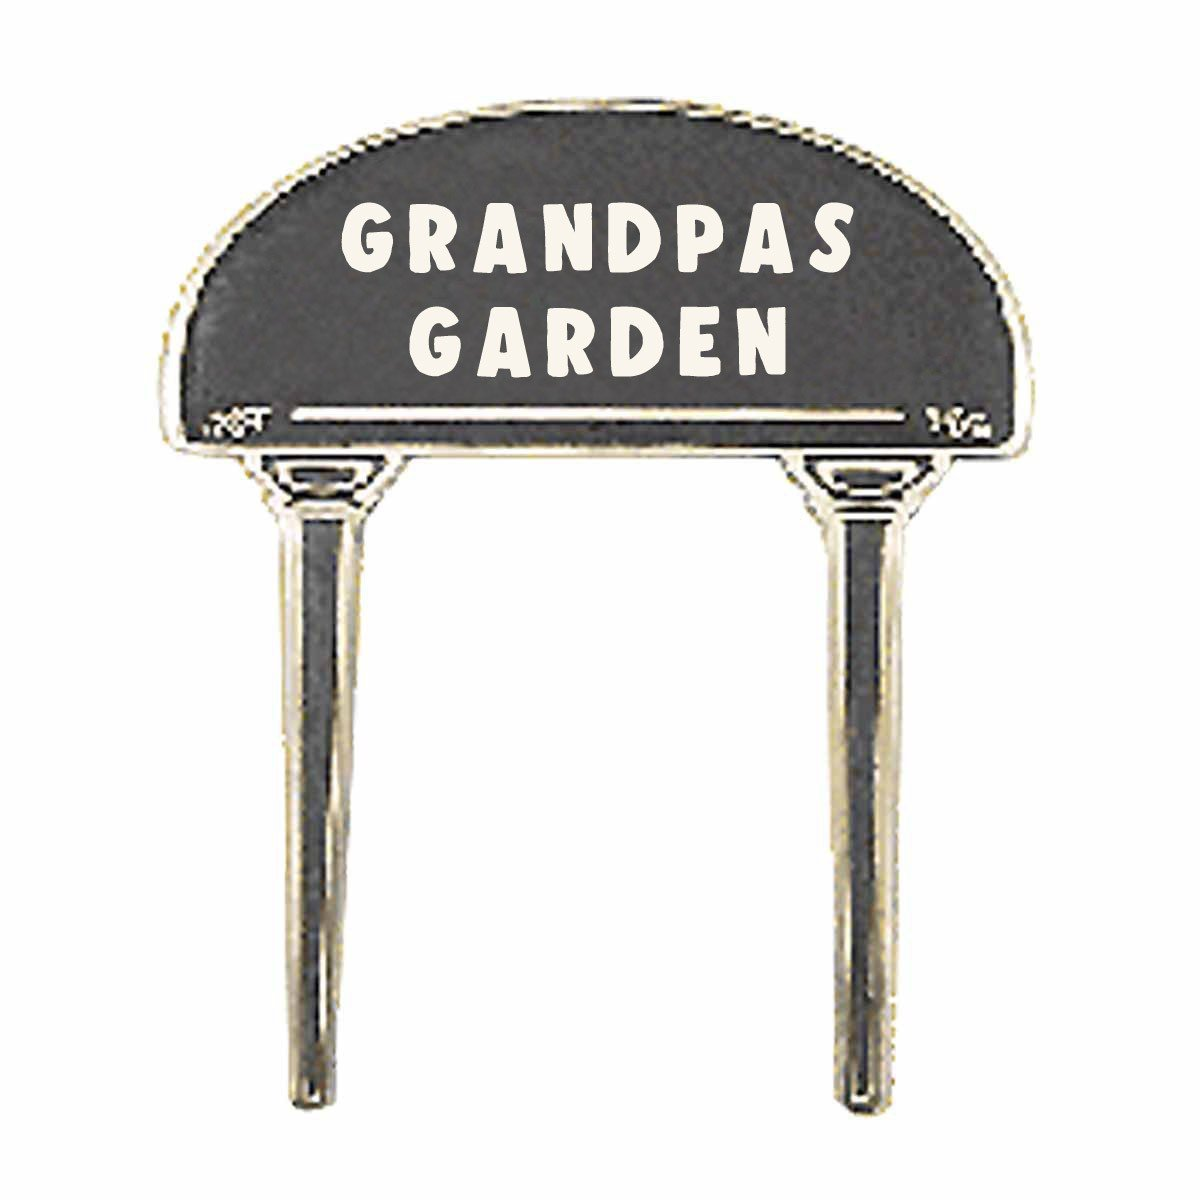 Renovator's Supply Solid Brass Plate Garden Sign GRANDPAS GARDEN Brass Plaques by Renovator's Supply